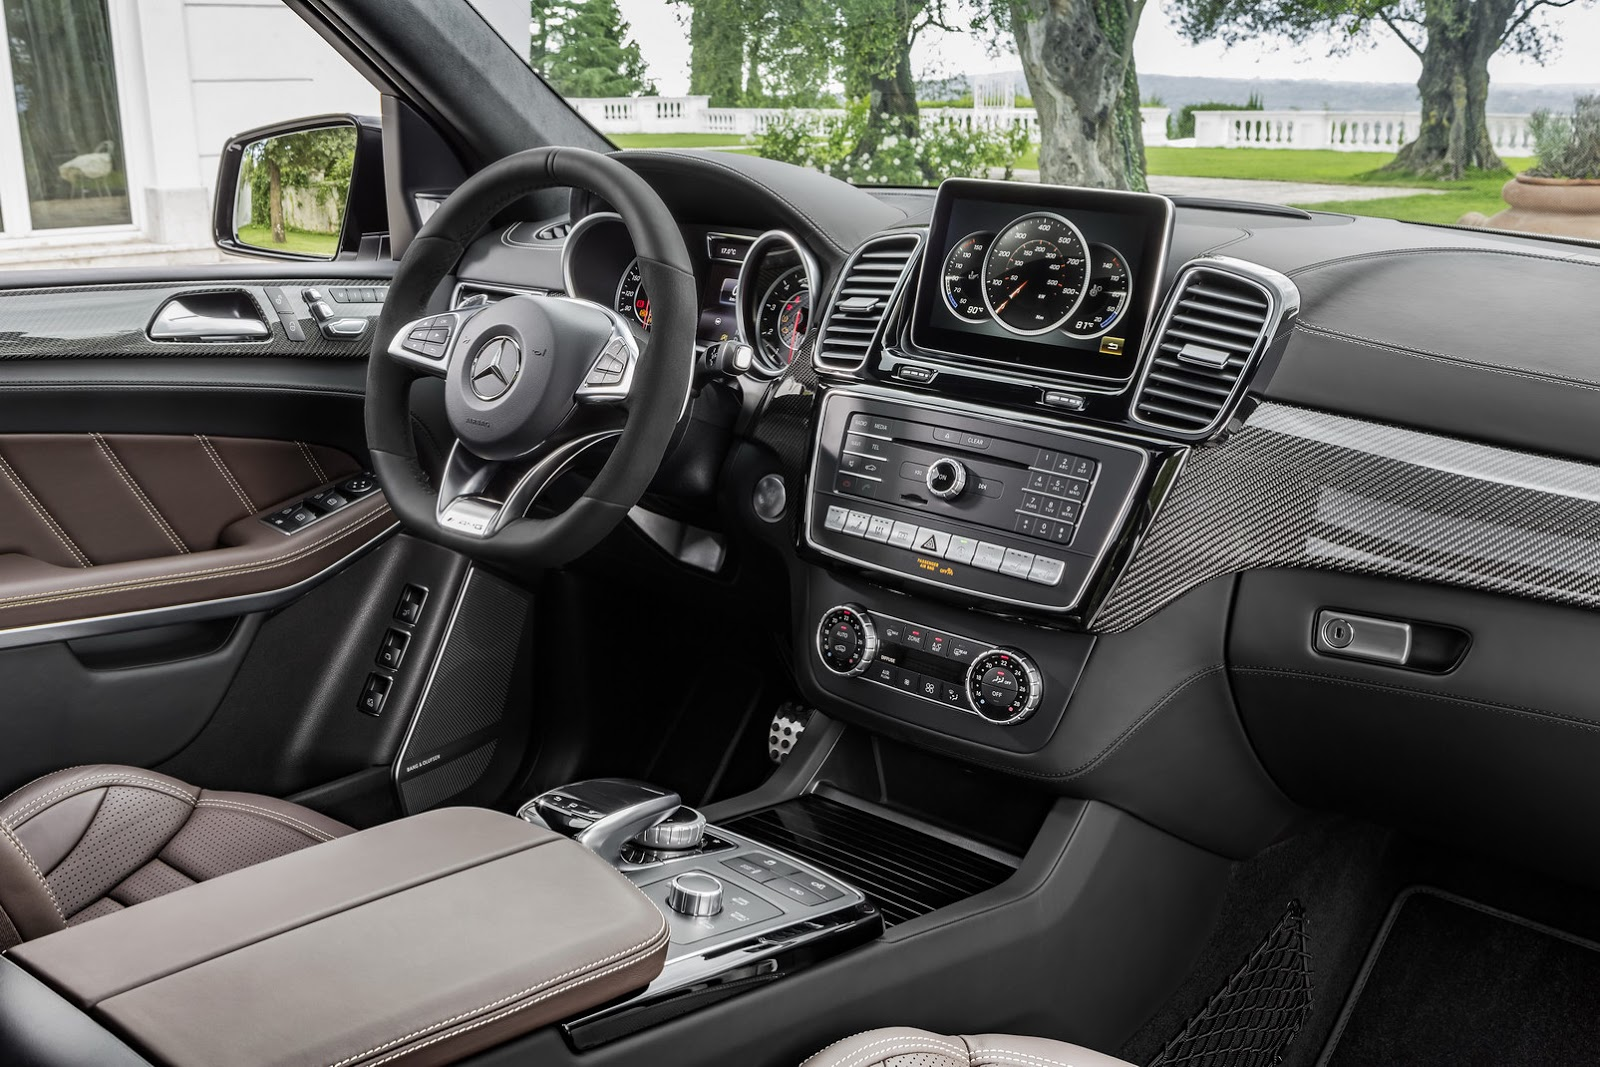 Mercedes Ml350 Price 2017 >> Get A Better Look At 2017 Mercedes-Benz GLS In 69 Pics [w/Video]